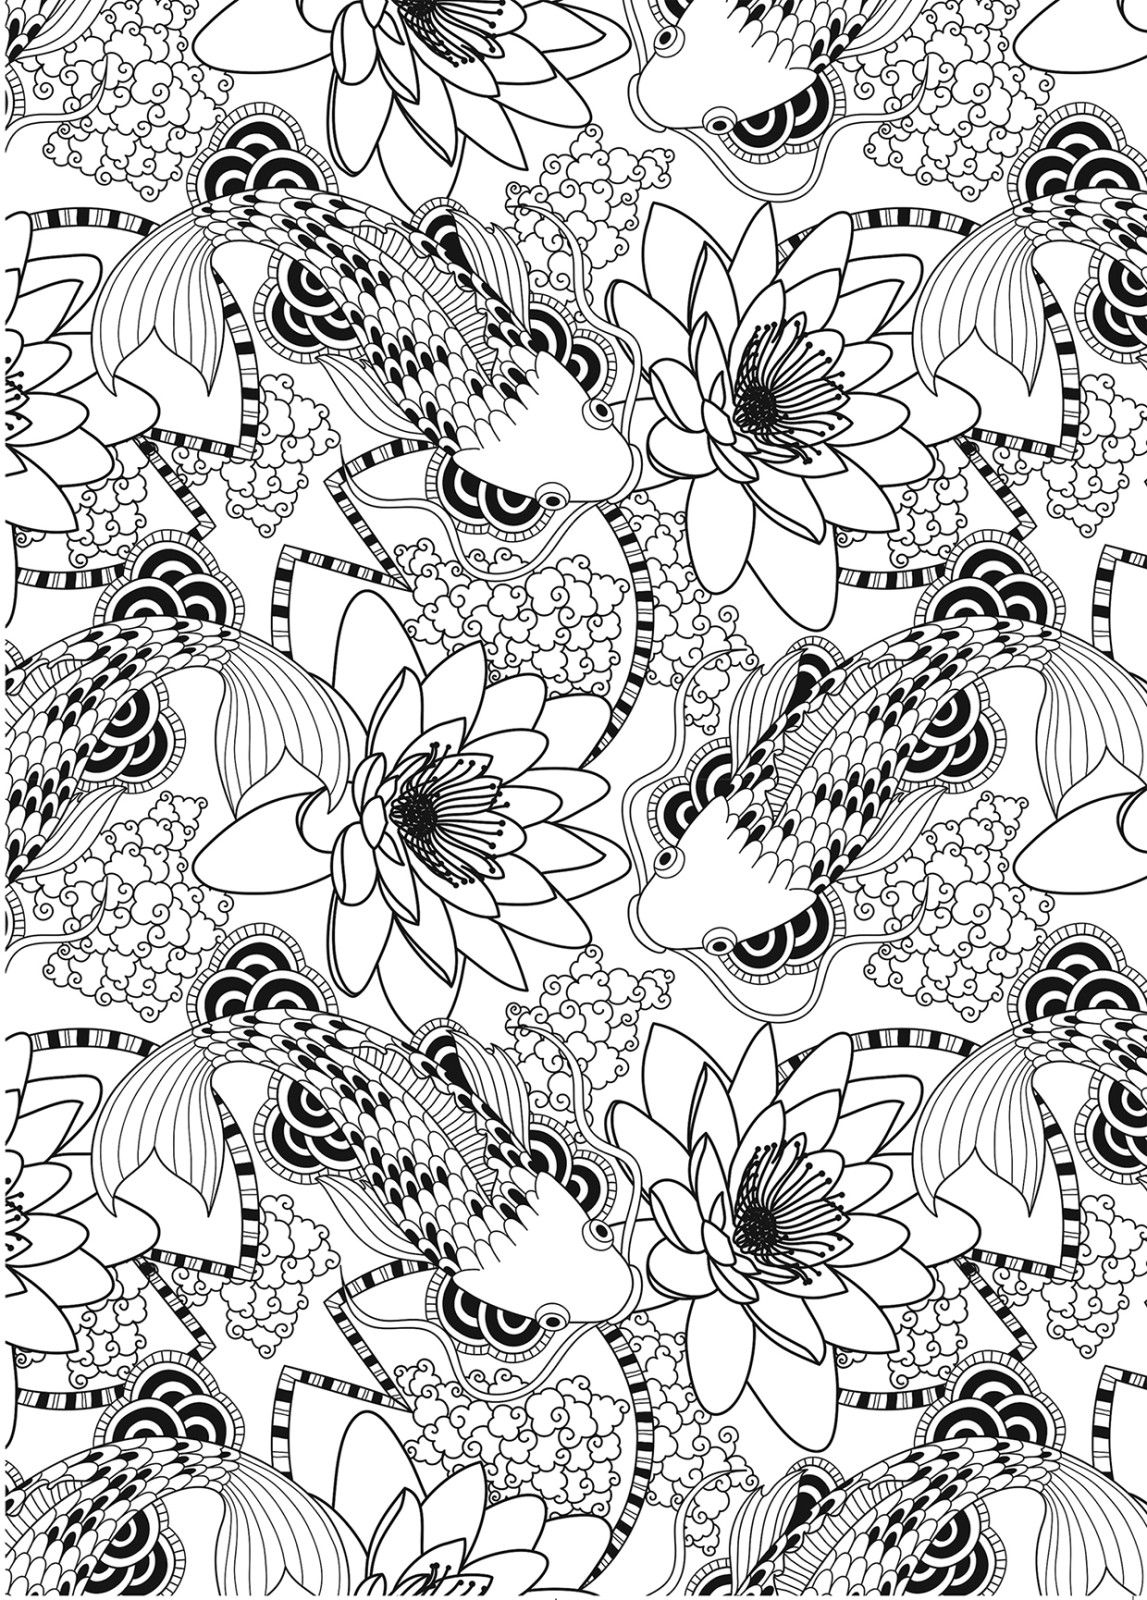 Koi Pond Pattern Free Download | Estrés, Colorear y Mandalas